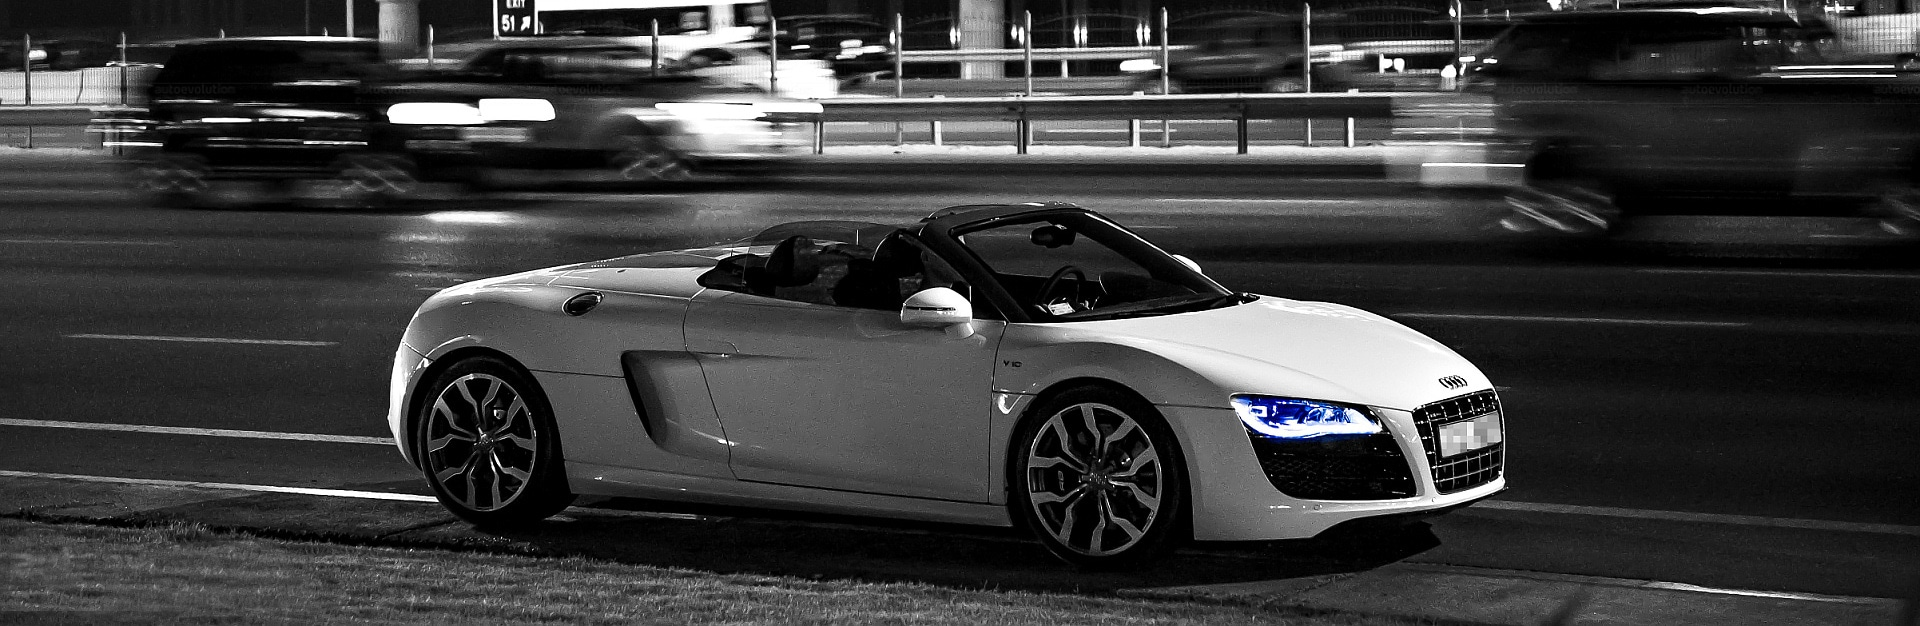 2013-Audi-R8-V10-Spyder-Black-back